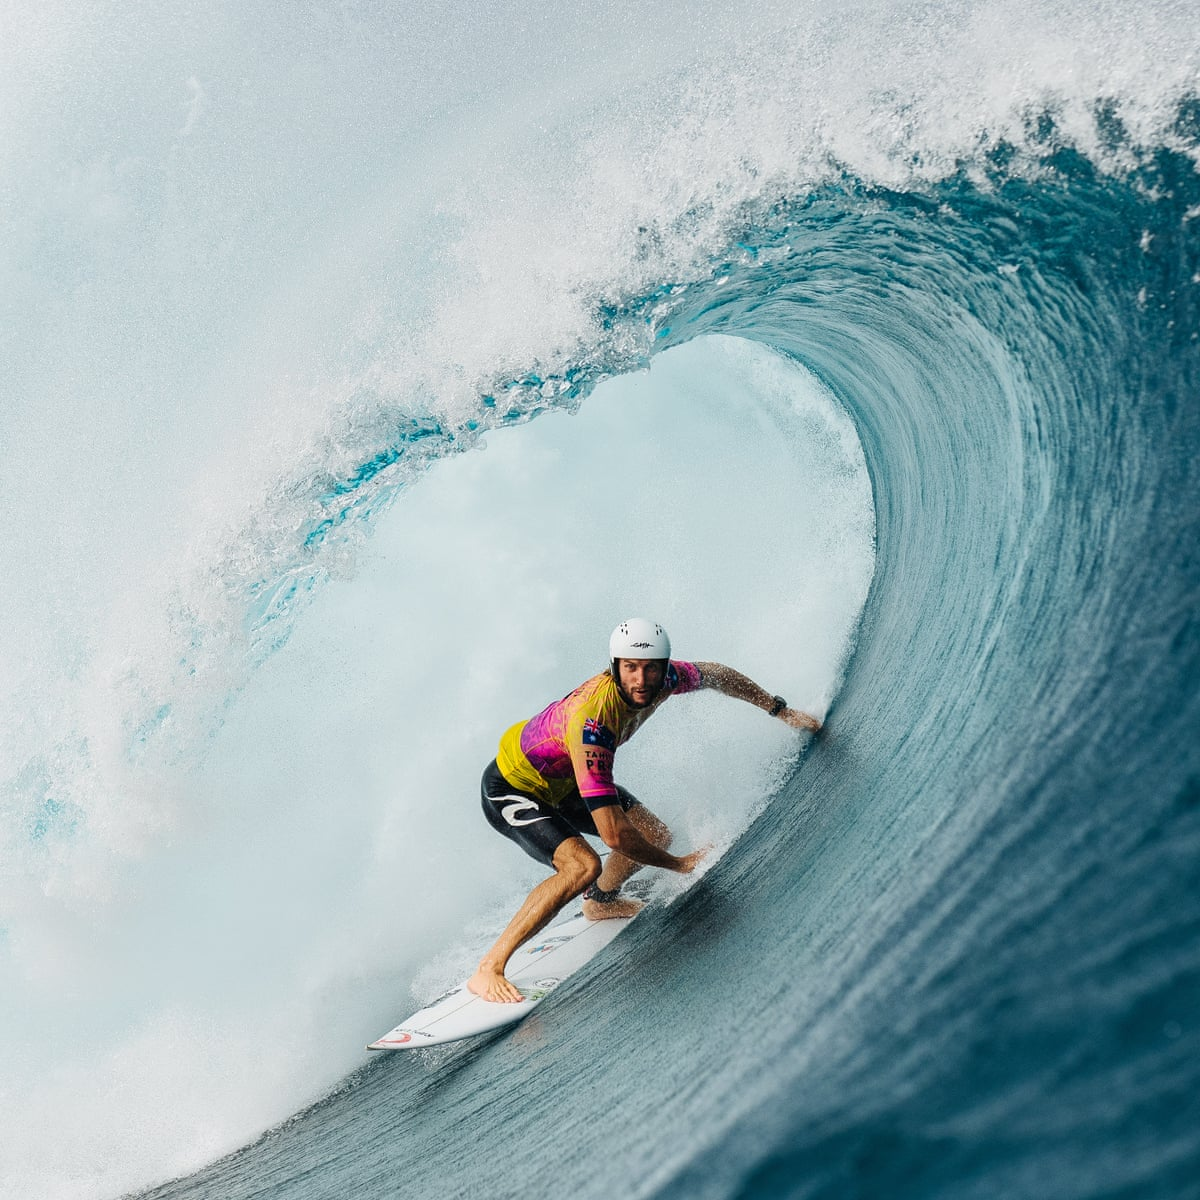 Paris wants to host Olympic surfing competitions on Tahiti ...